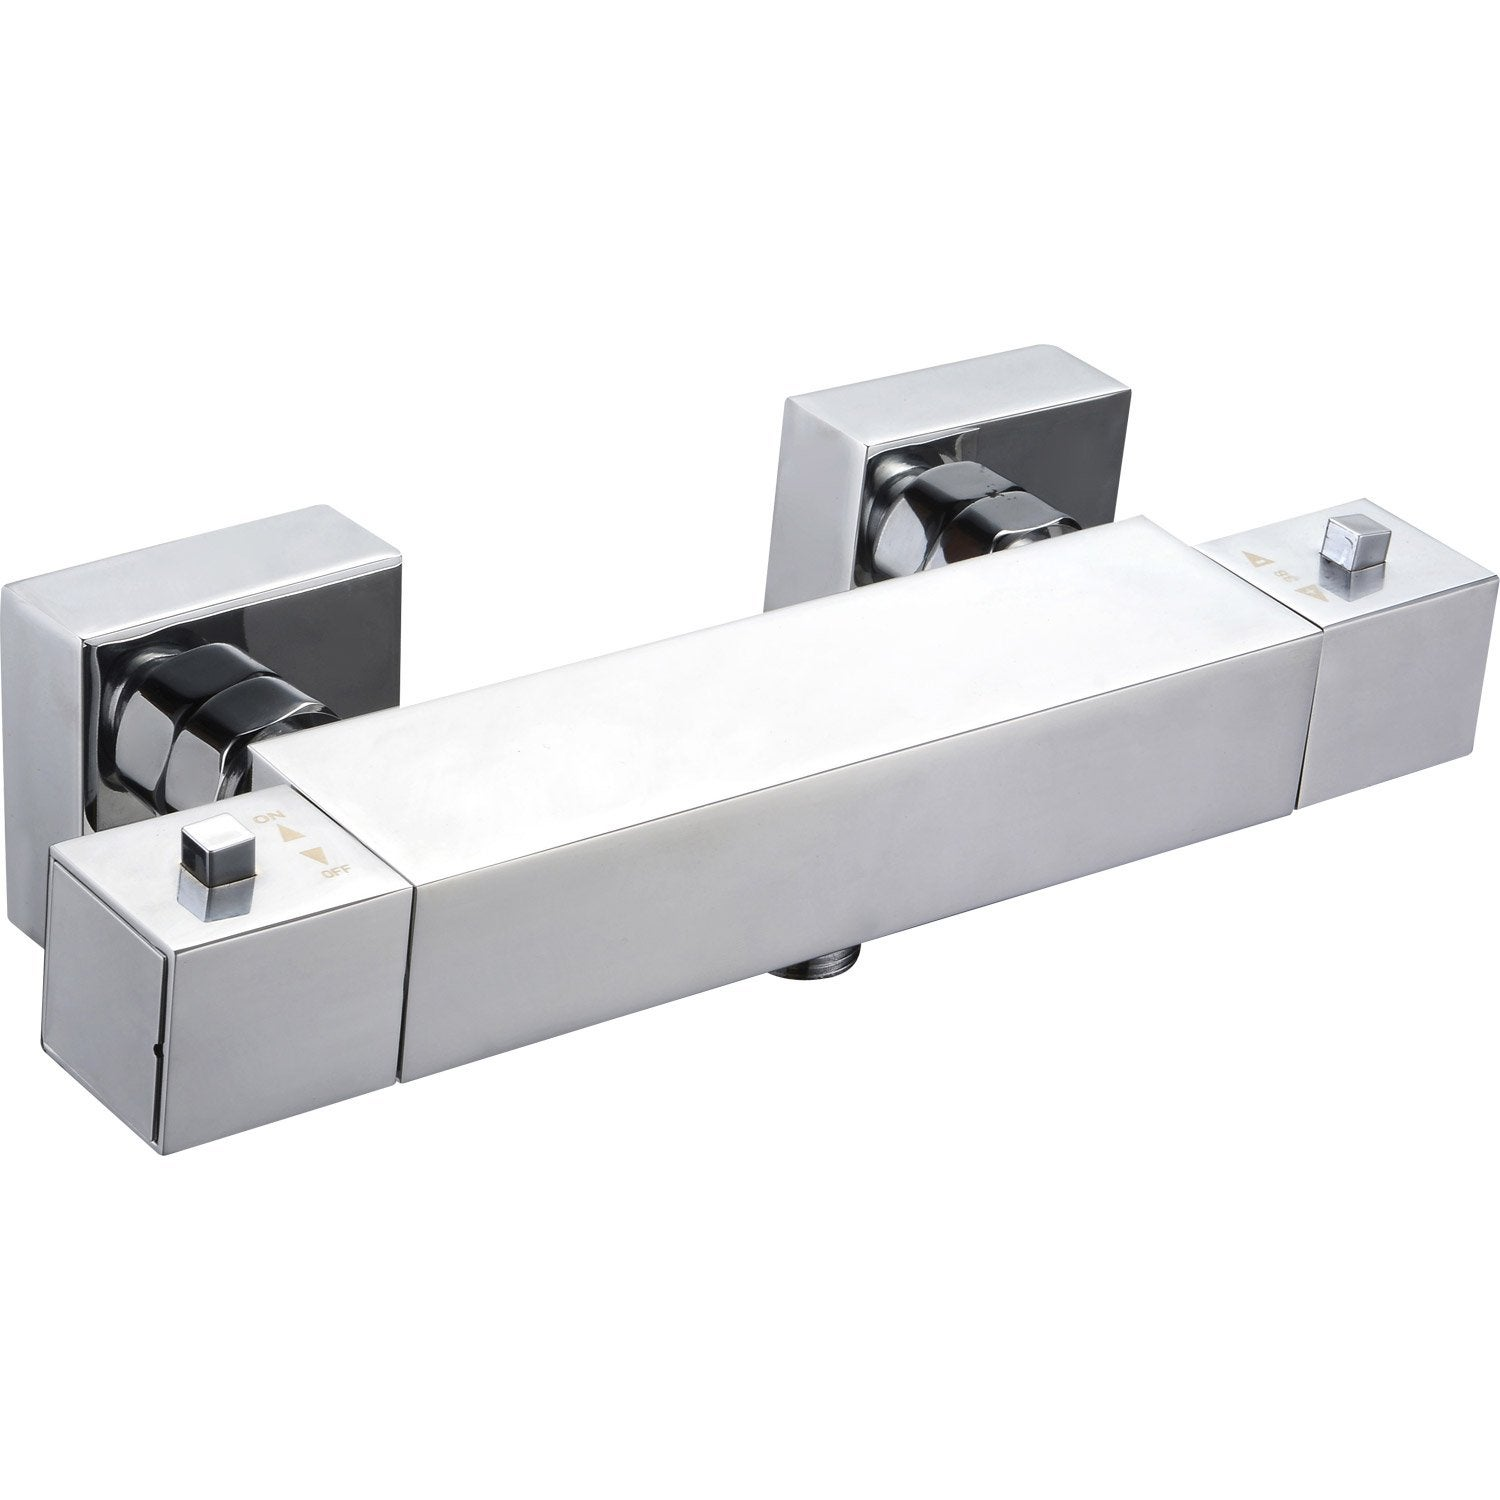 Mitigeur thermostatique de douche chrom sensea luka - Reglage mitigeur thermostatique douche ...